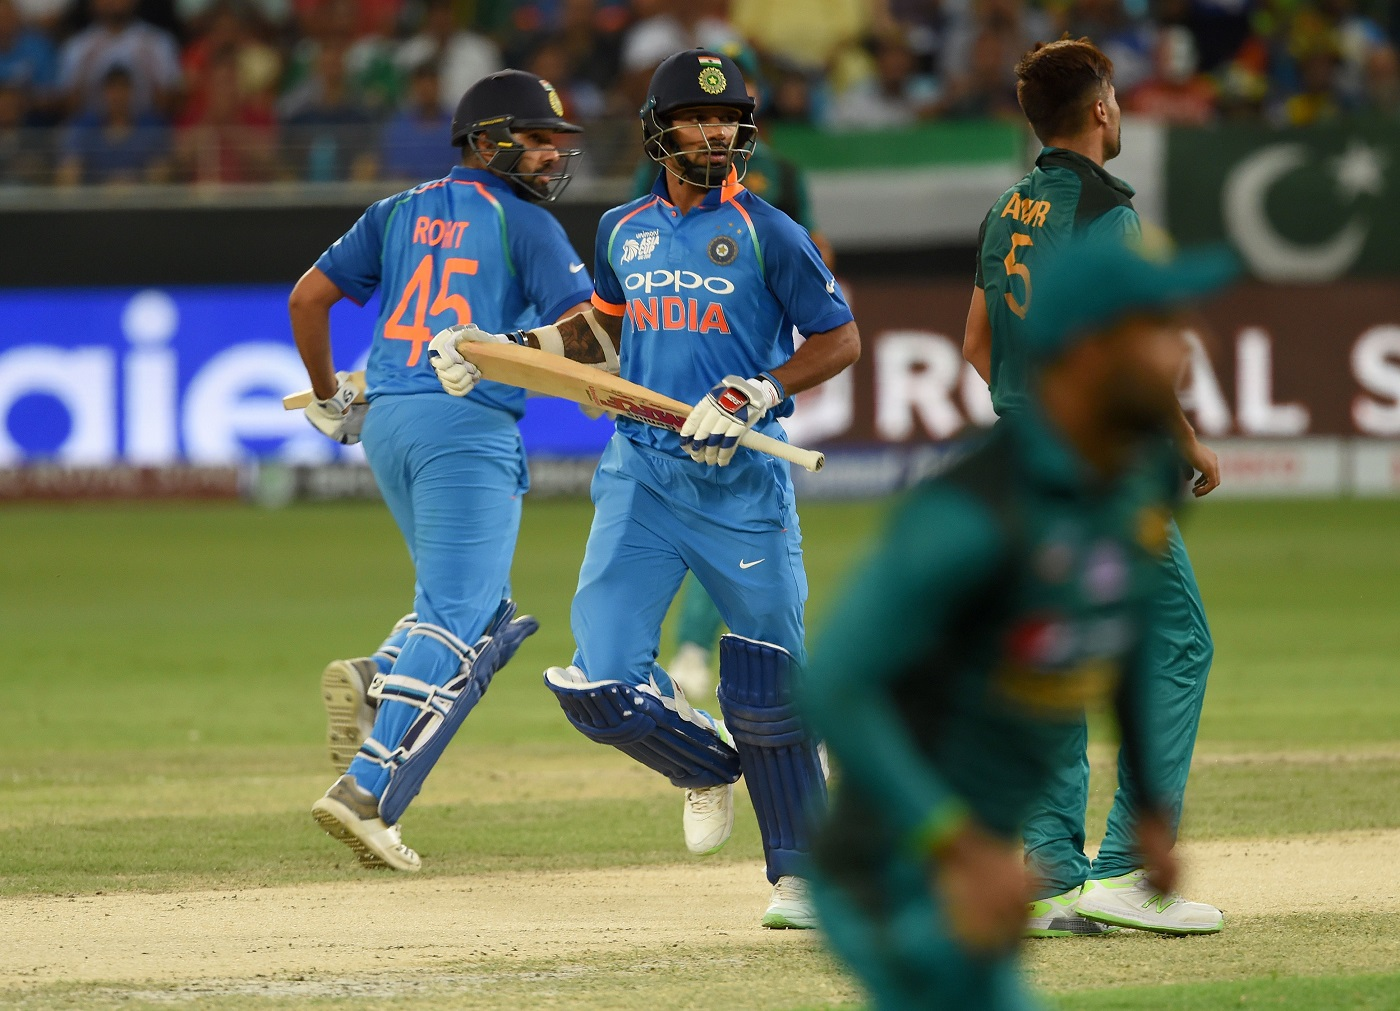 Indian openers destroy Pakistan's bowling as they romp to nine-wicket win in the Asia Cup